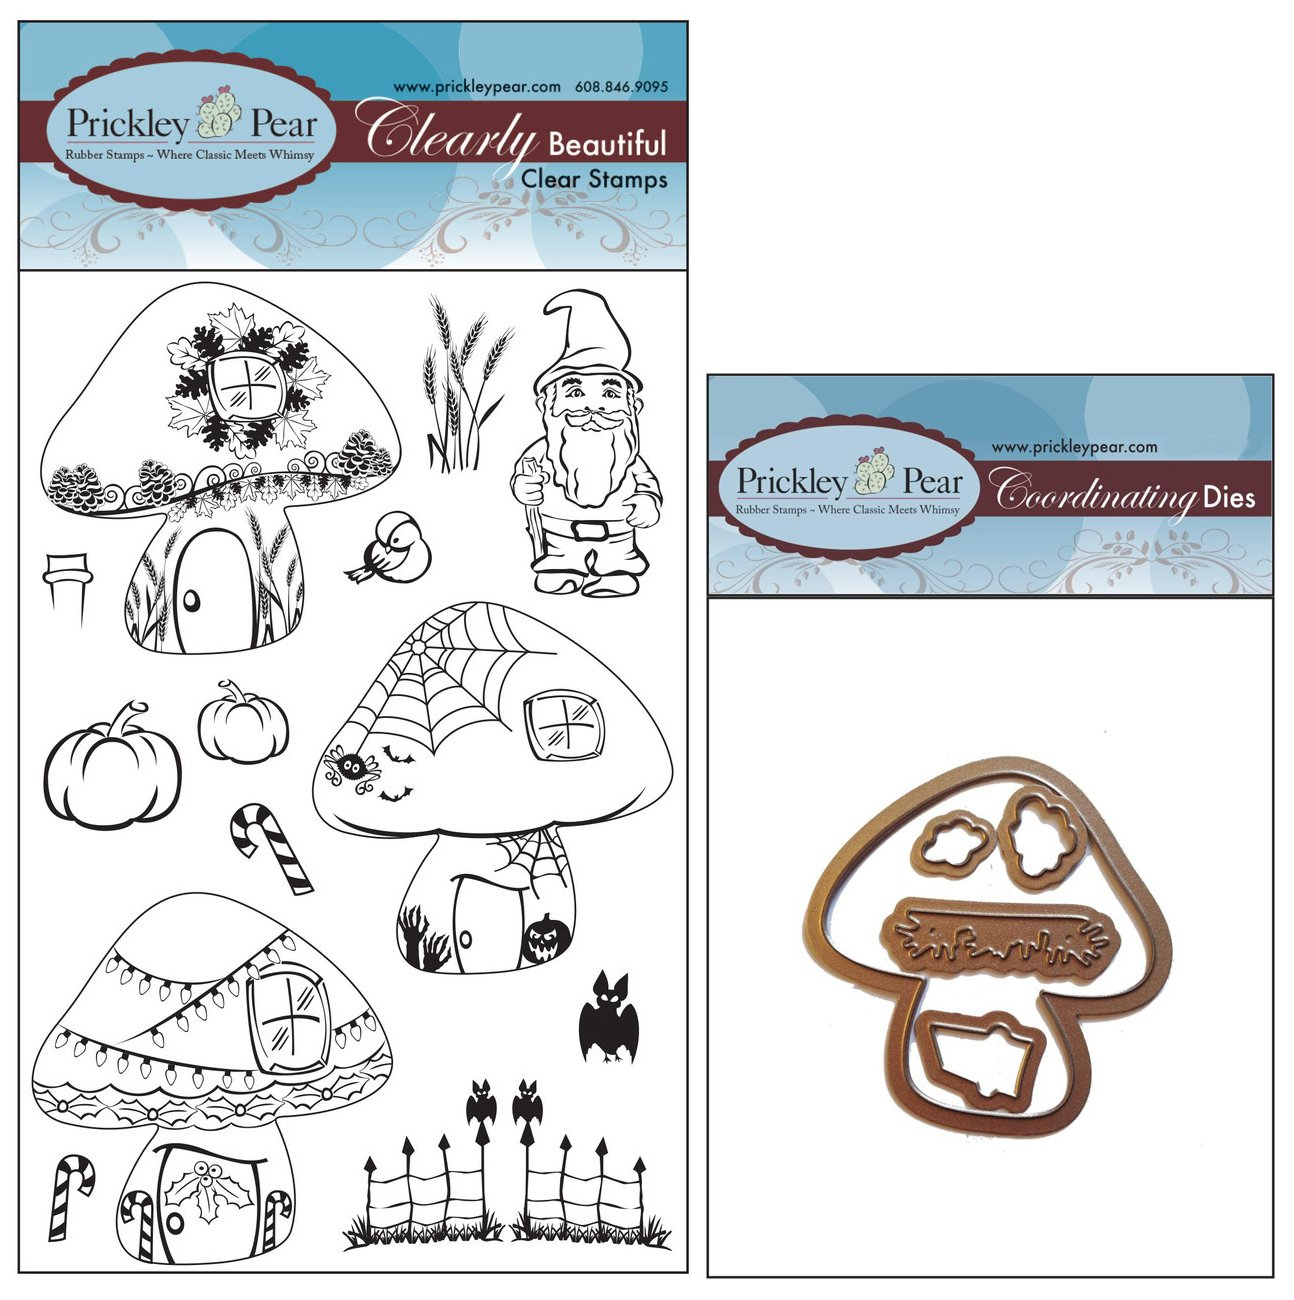 Prickley Pear Fall Christmas Gnome Homes Clear Stamp and Die Set - CLR058A & PPRS-D058 - Bundle 2 Items